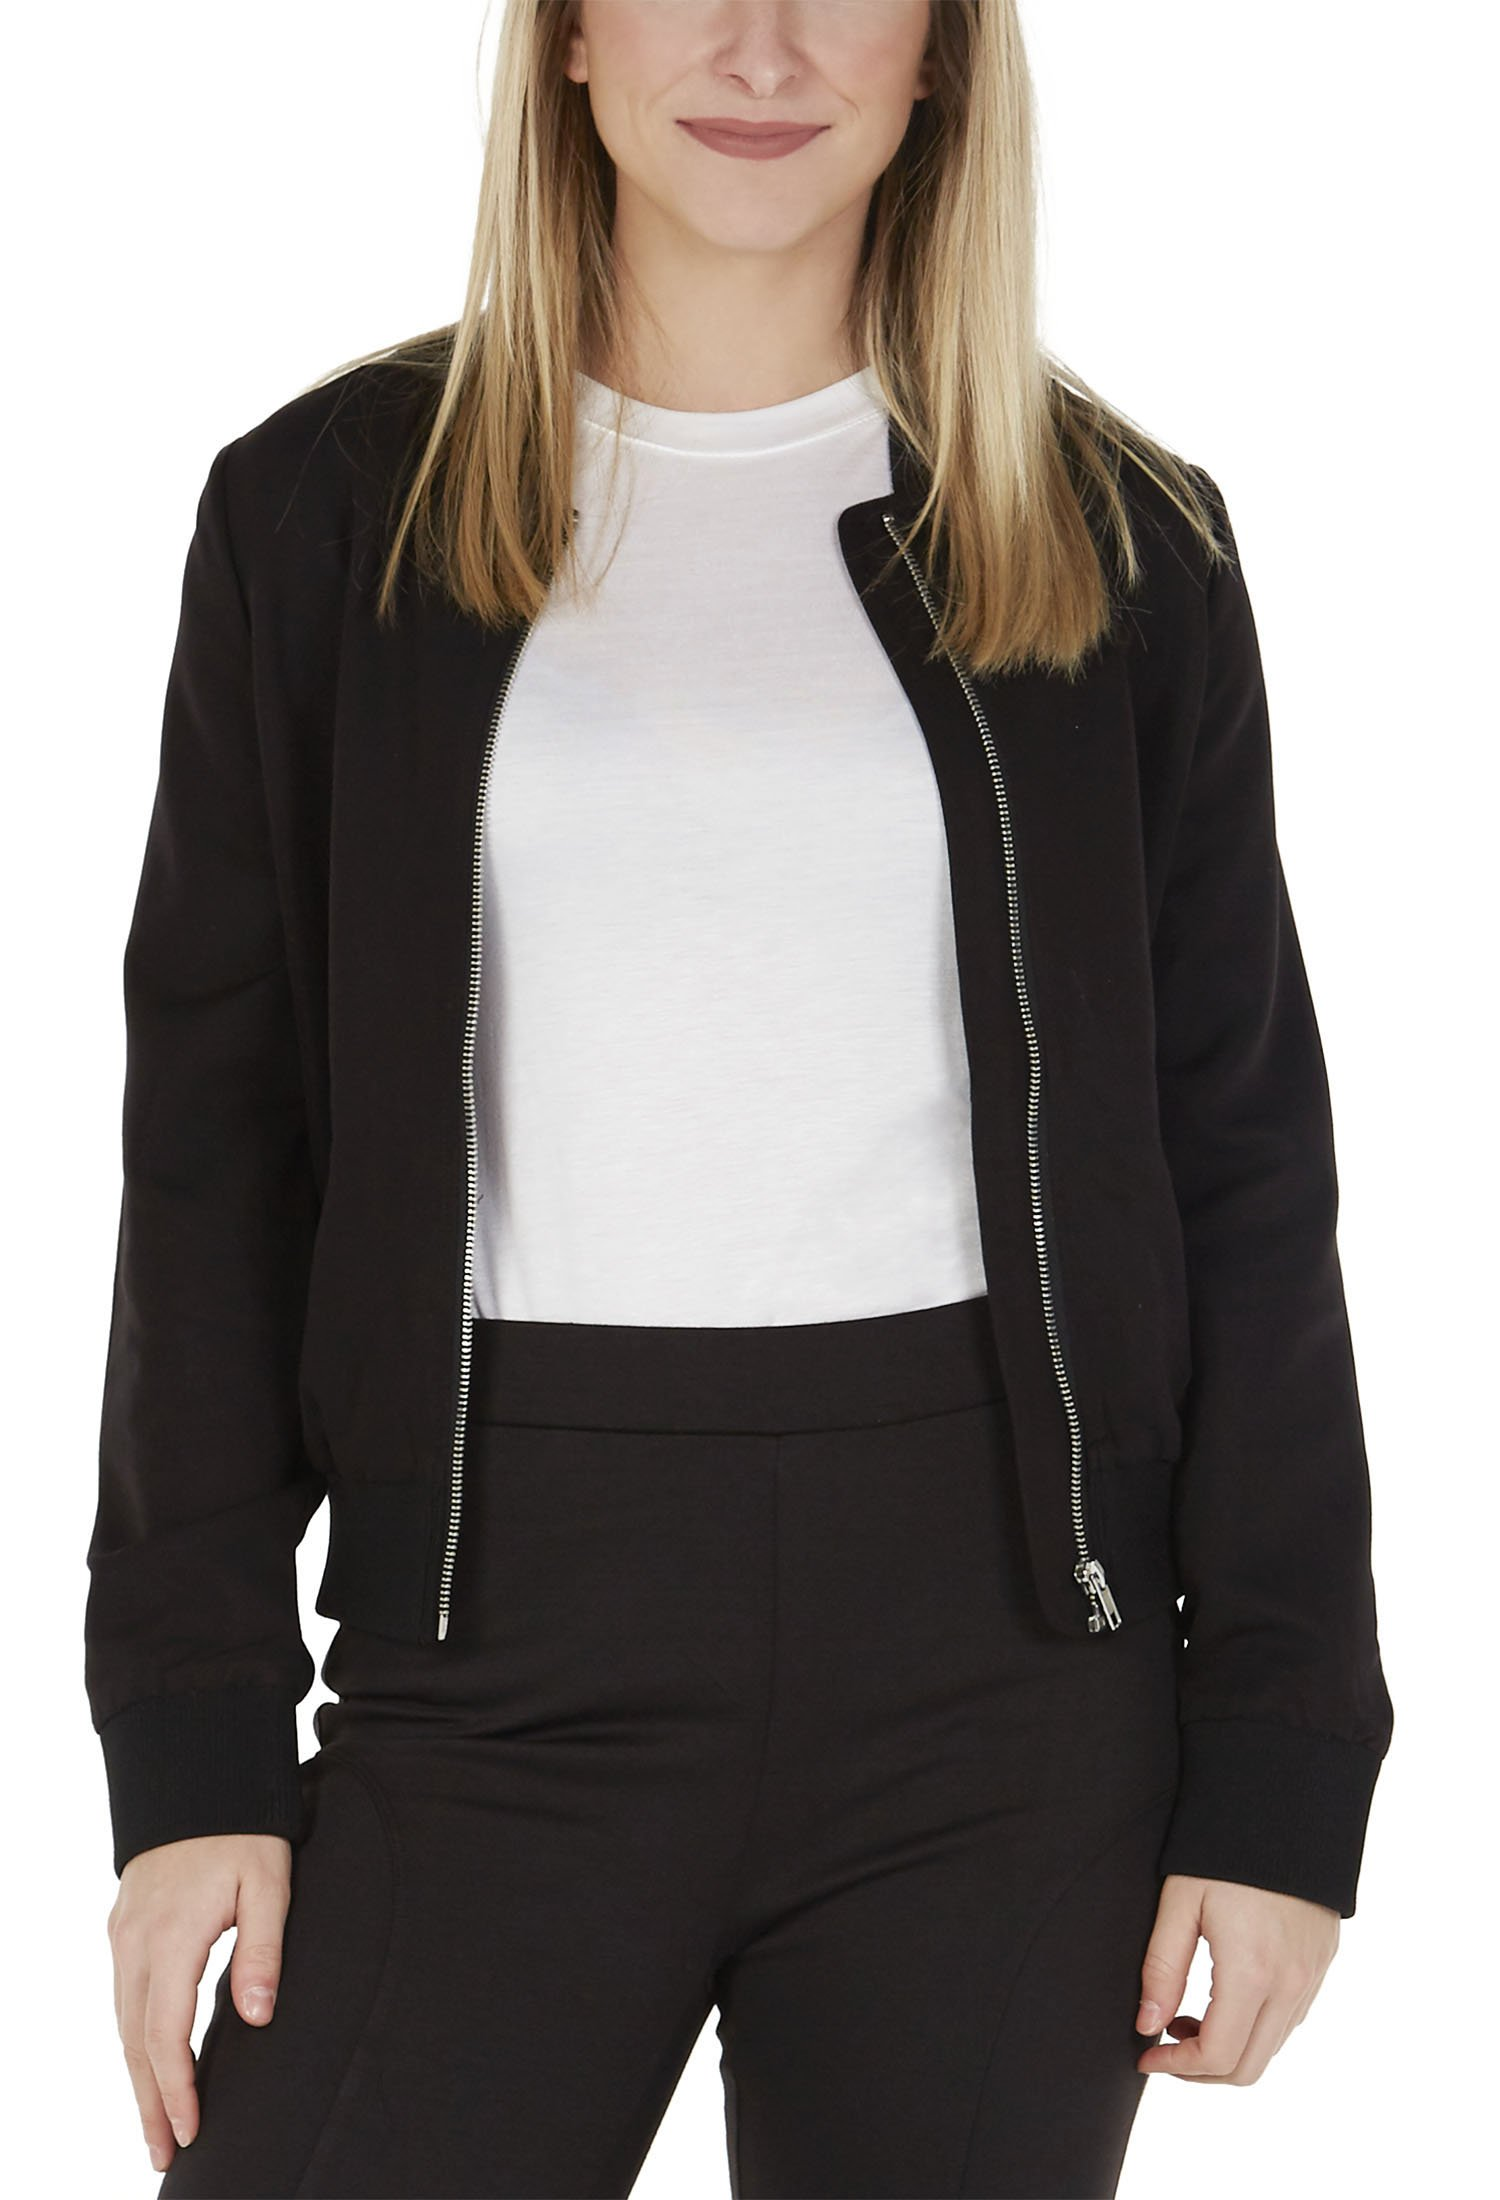 Kat & Emma Classic Style Boxy Womens Bomber Jacket with Two Front Pockets (Black, X-Small)